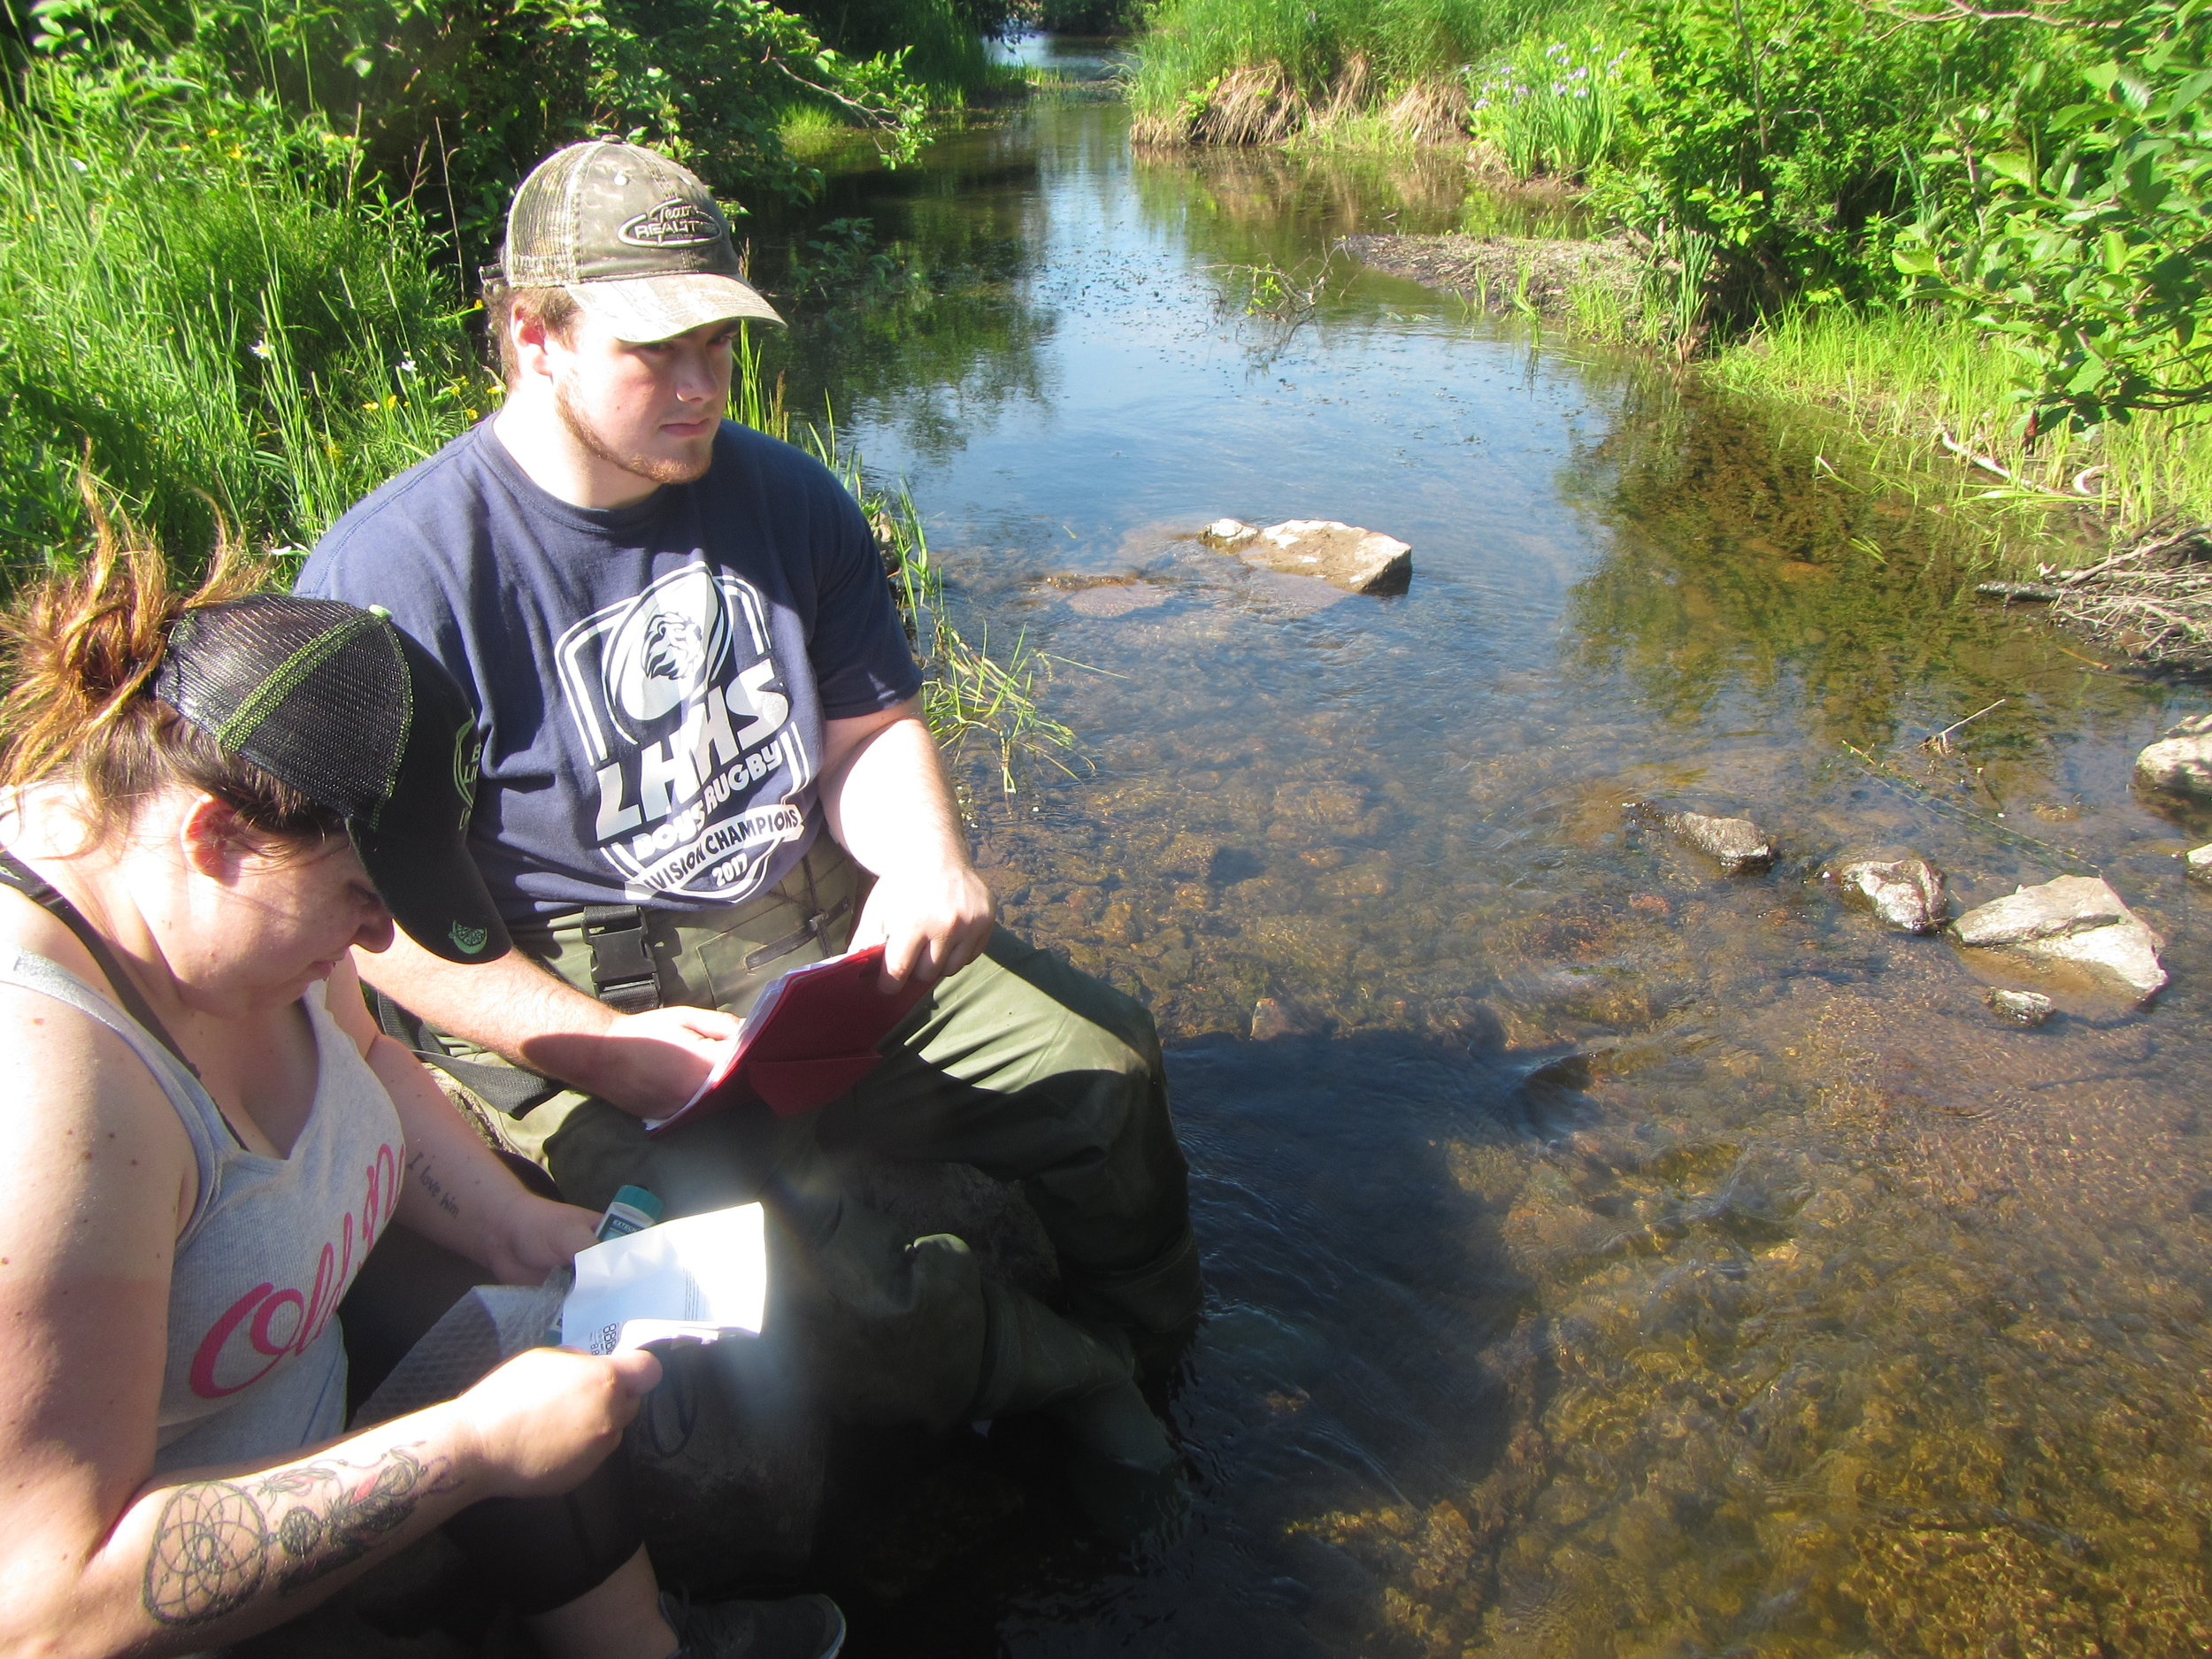 Kayla Blackwood and Jeremy Camus completing a site visit as part of the CRSA's ecological monitoring program